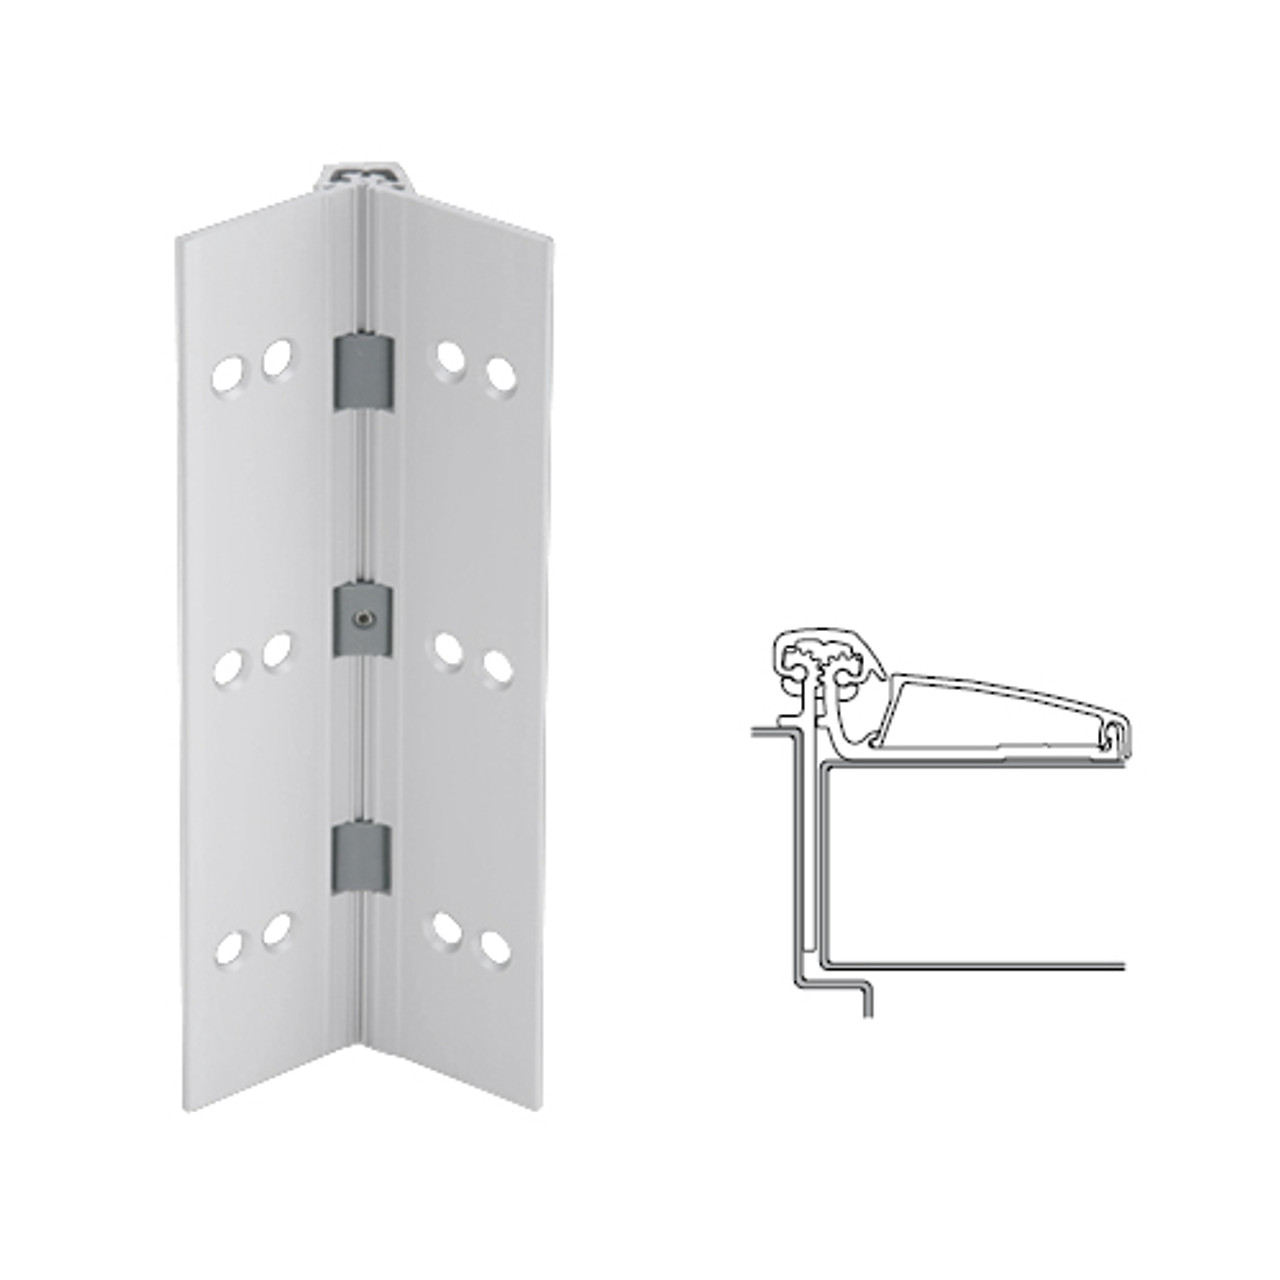 046XY-US28-85-SECWDHM IVES Adjustable Half Surface Continuous Geared Hinges with Security Screws - Hex Pin Drive in Satin Aluminum